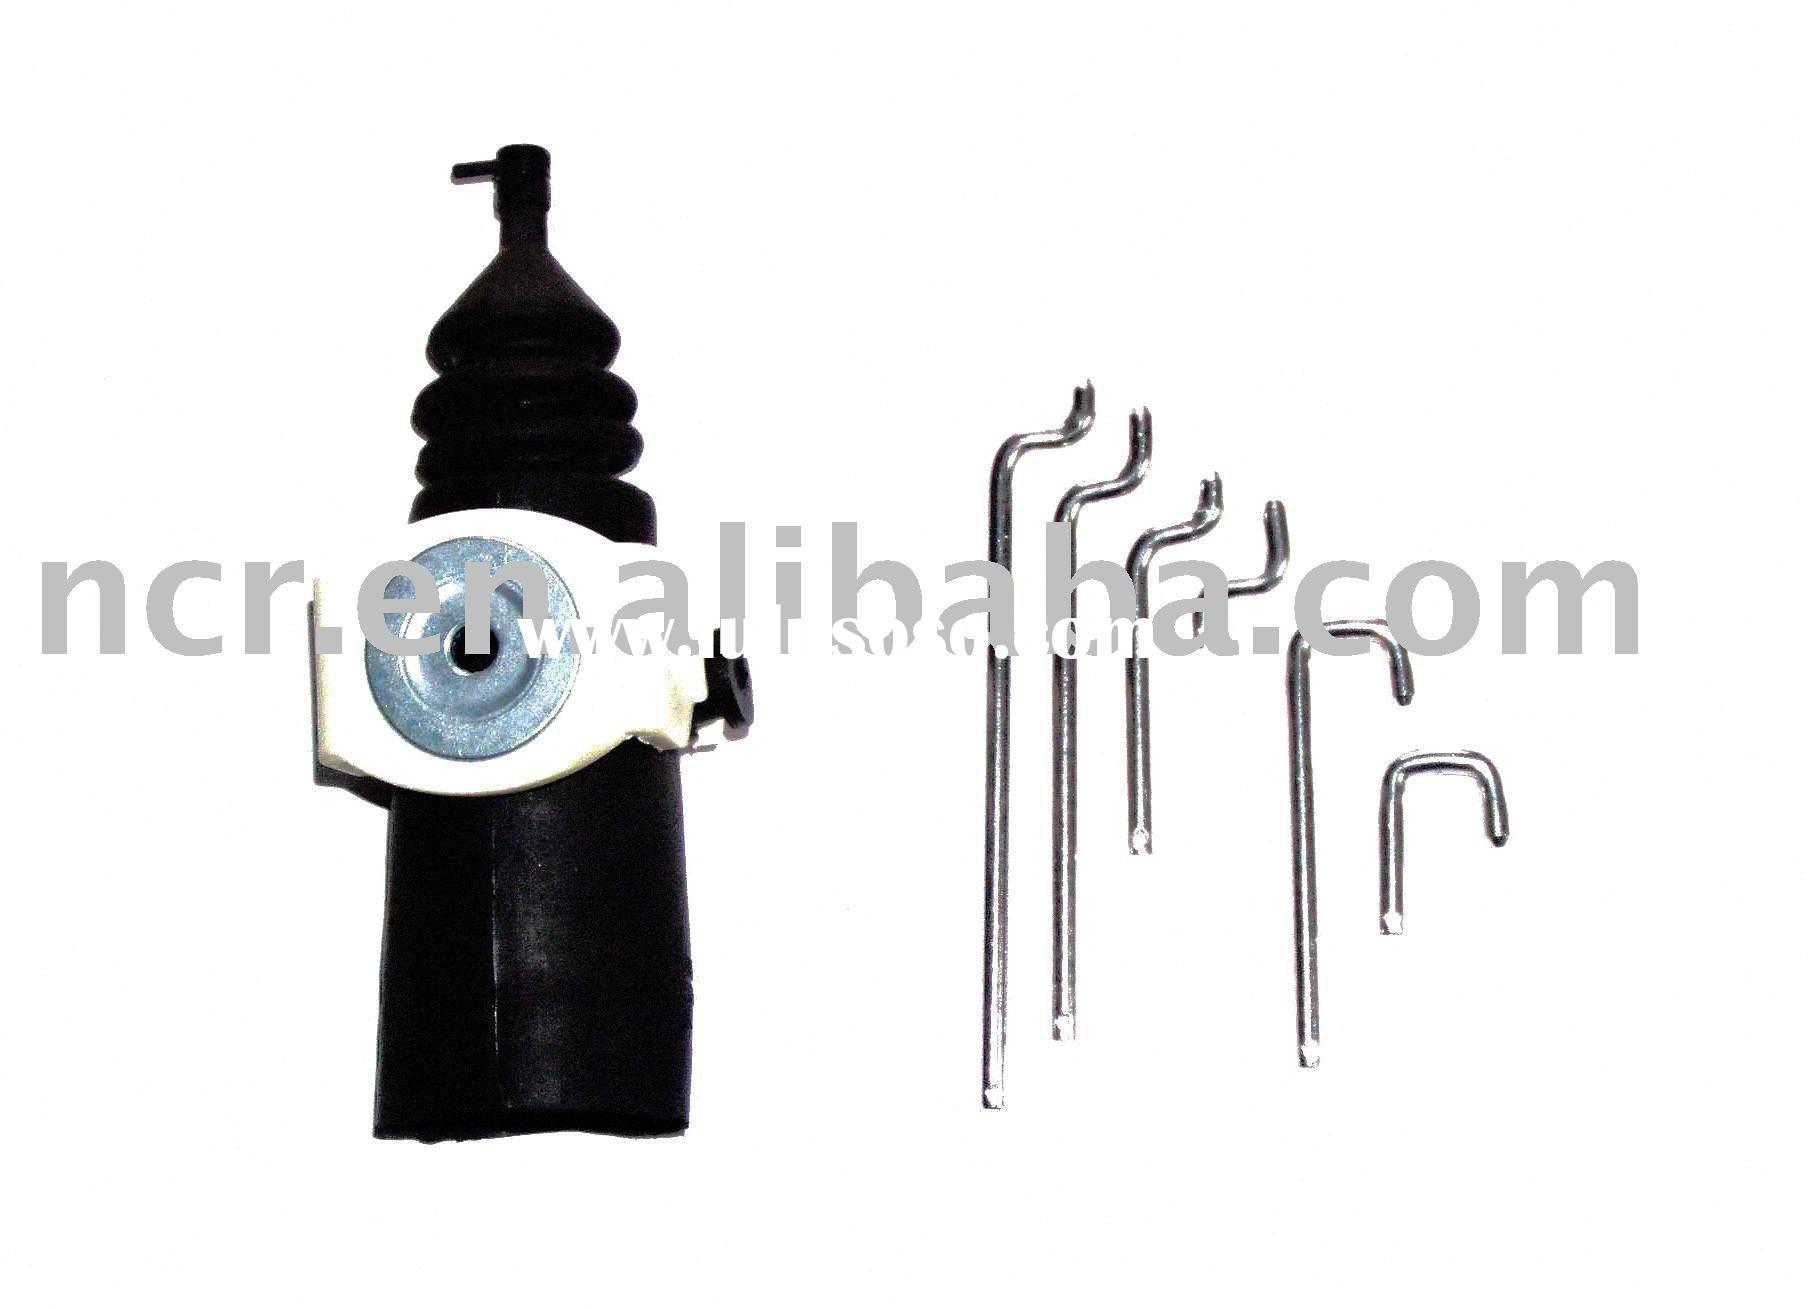 Ford Actuator (NCR F003)